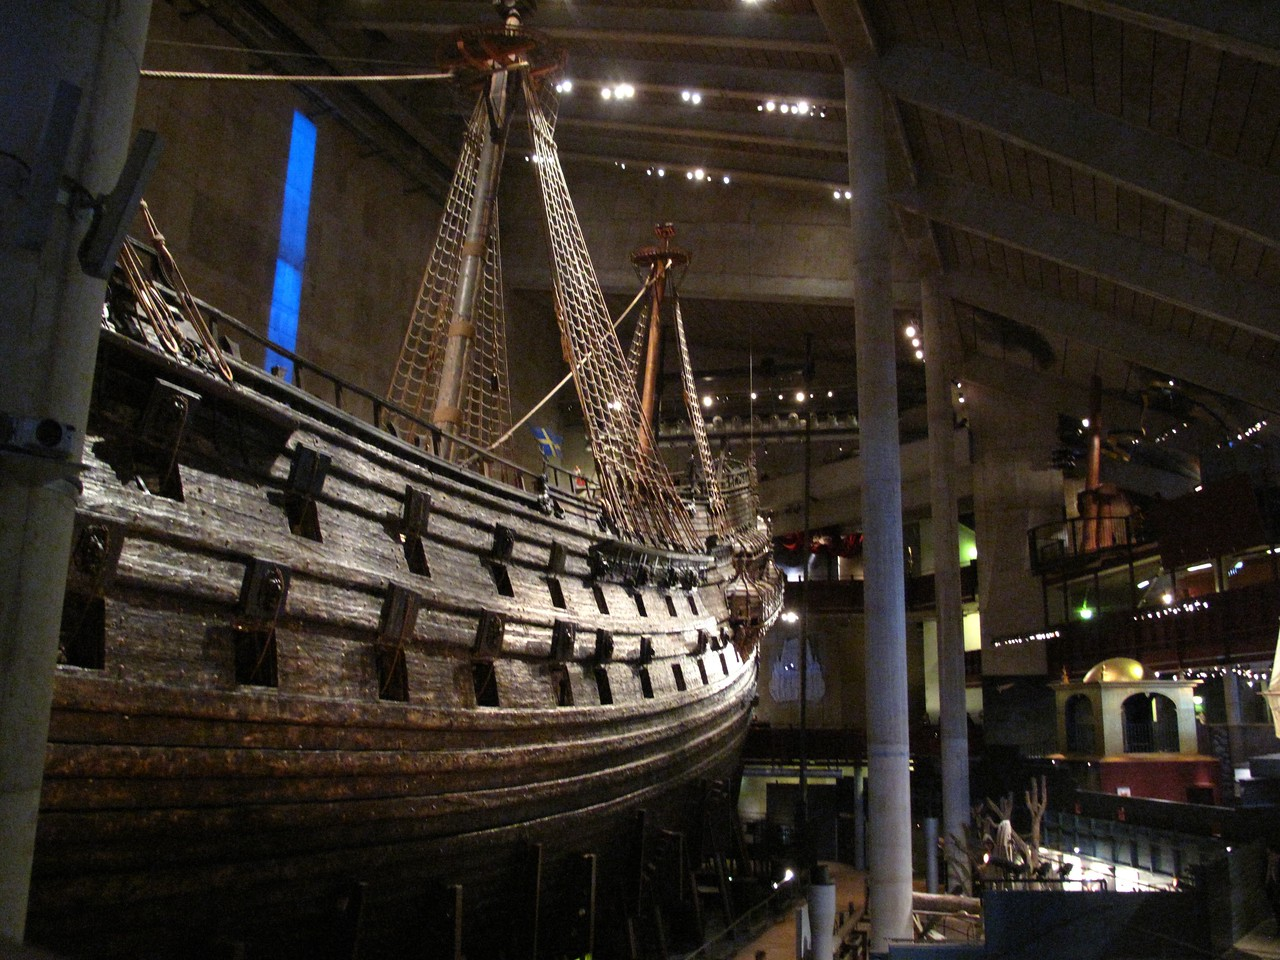 The museum was built around the dry dock and opened in 1990.